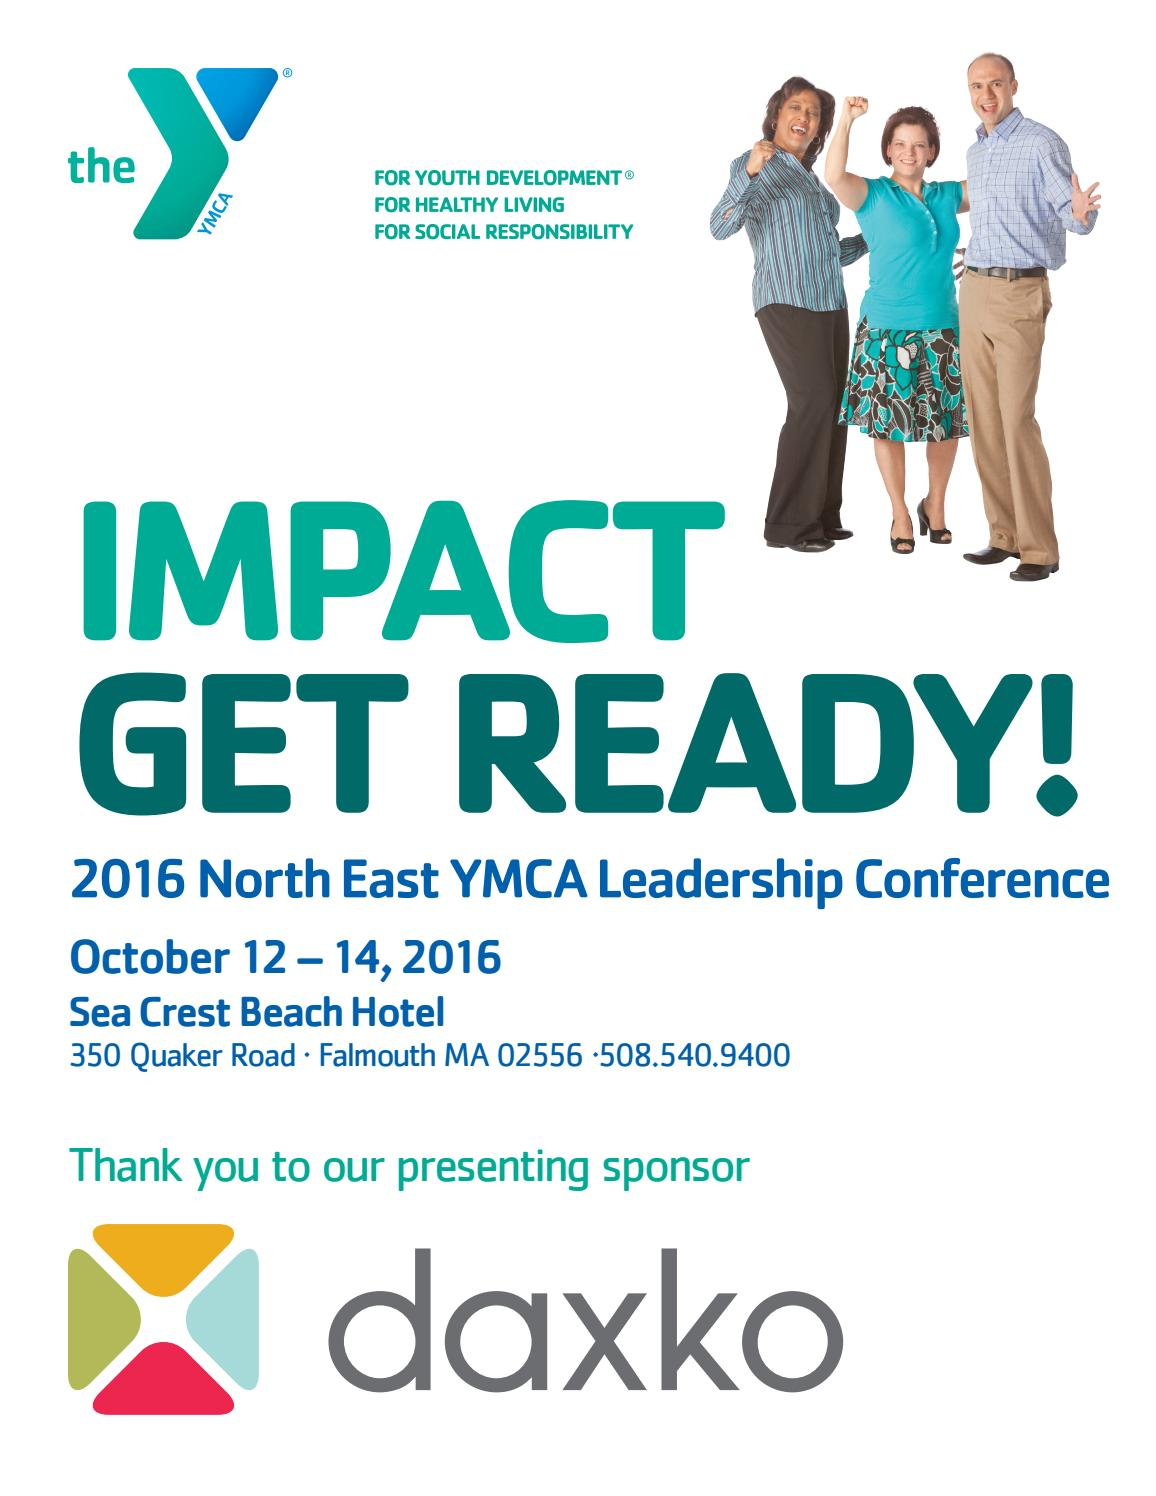 Leadership conference program by YMCA SOUTHCOAST - issuu